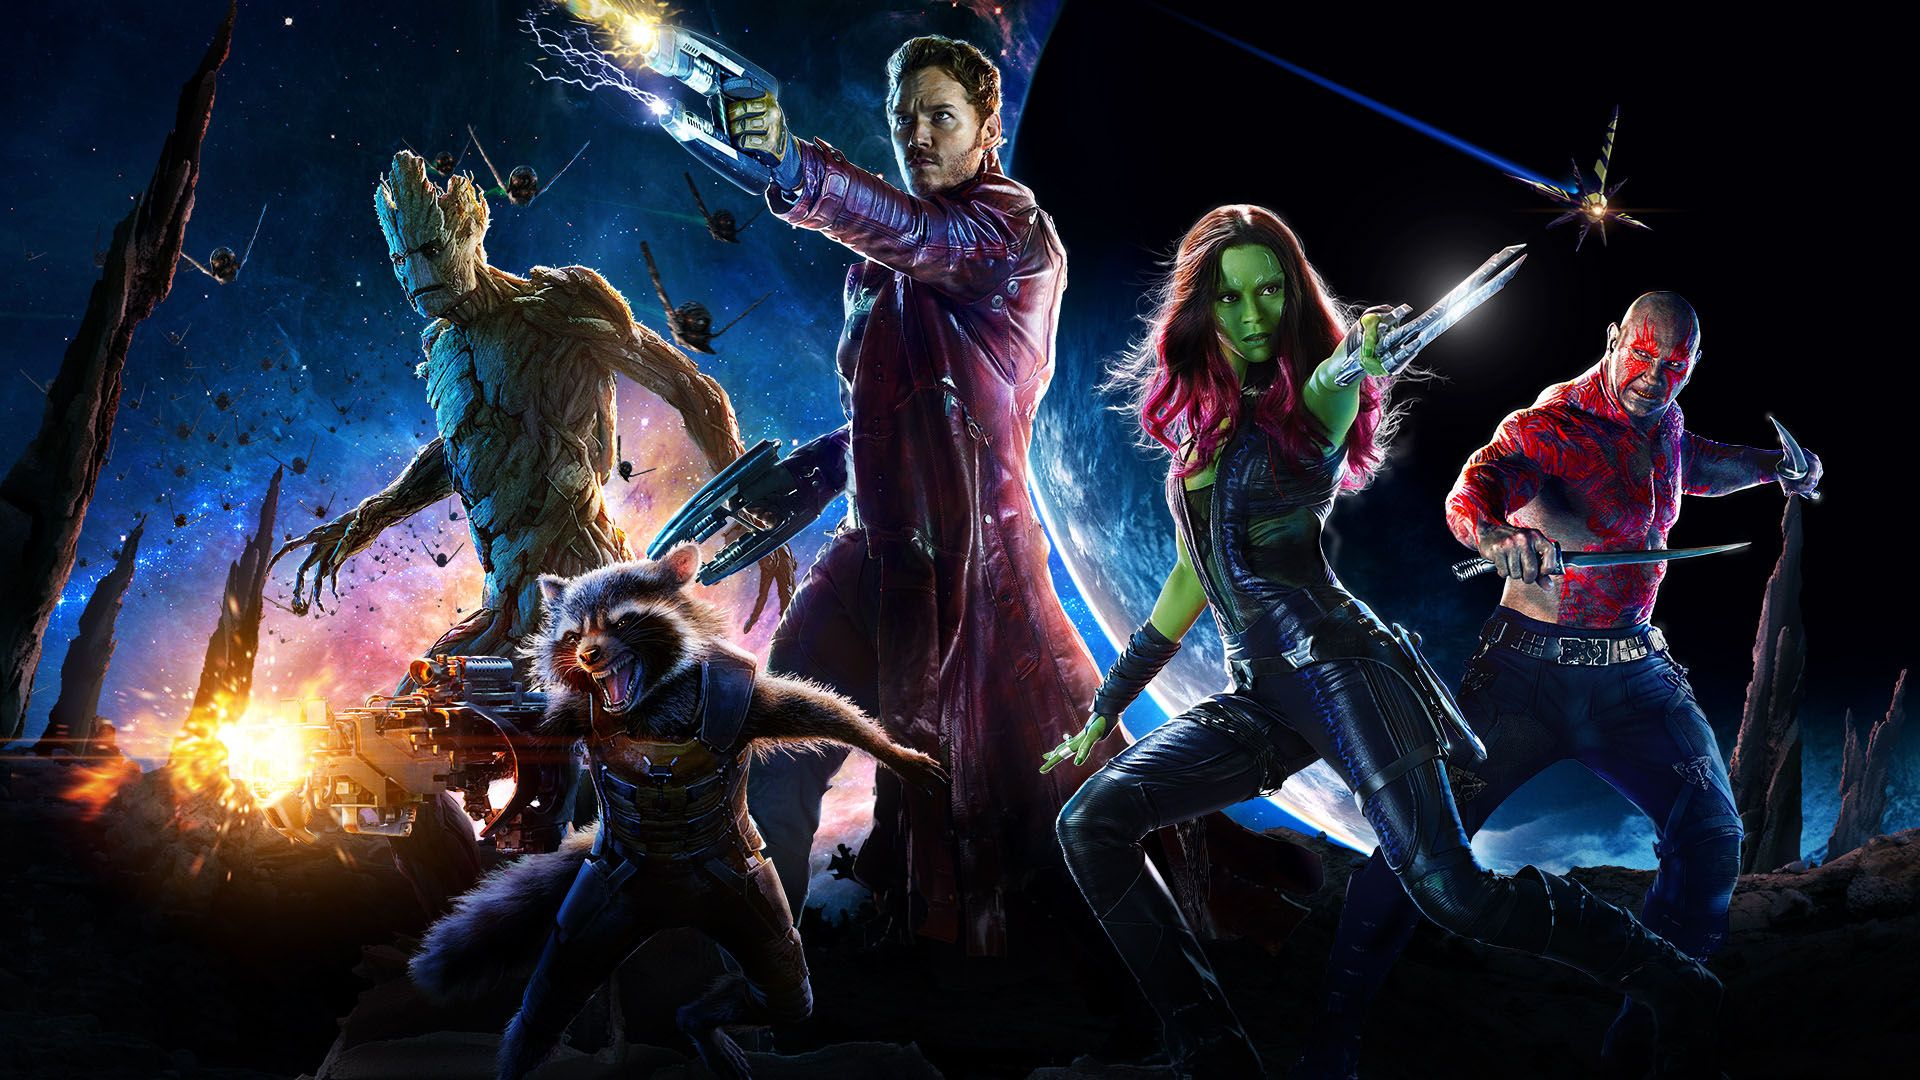 Download Wallpaper Movie Guardians The Galaxy - 07cf80add80bf3a0028cdec3bafd9b47  Graphic_735223.jpg